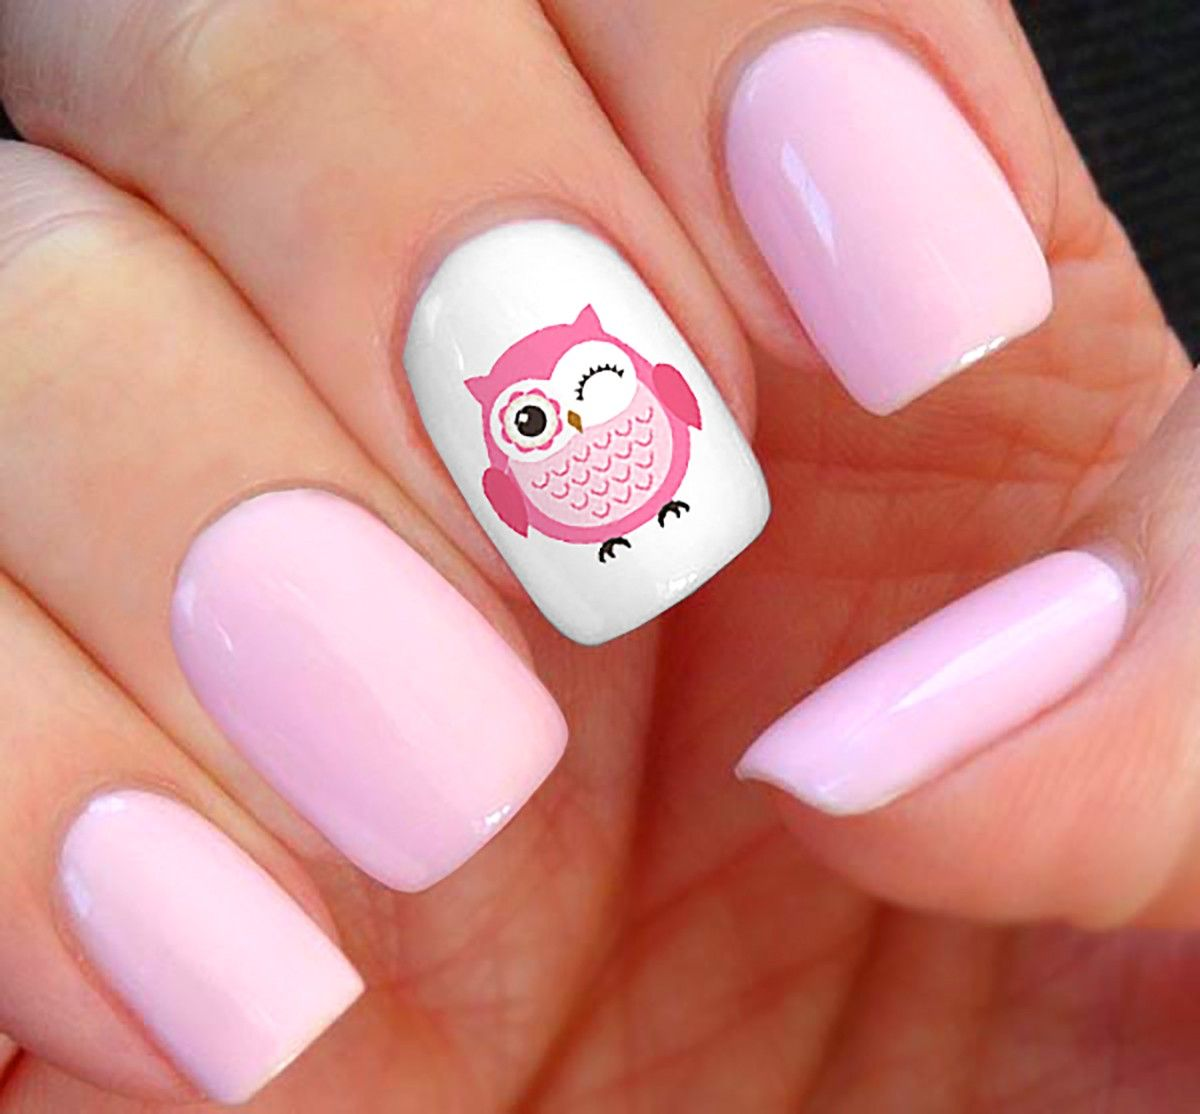 Simple White And Pink Polish With Pink Owl Tip Nail Art | decorado ...